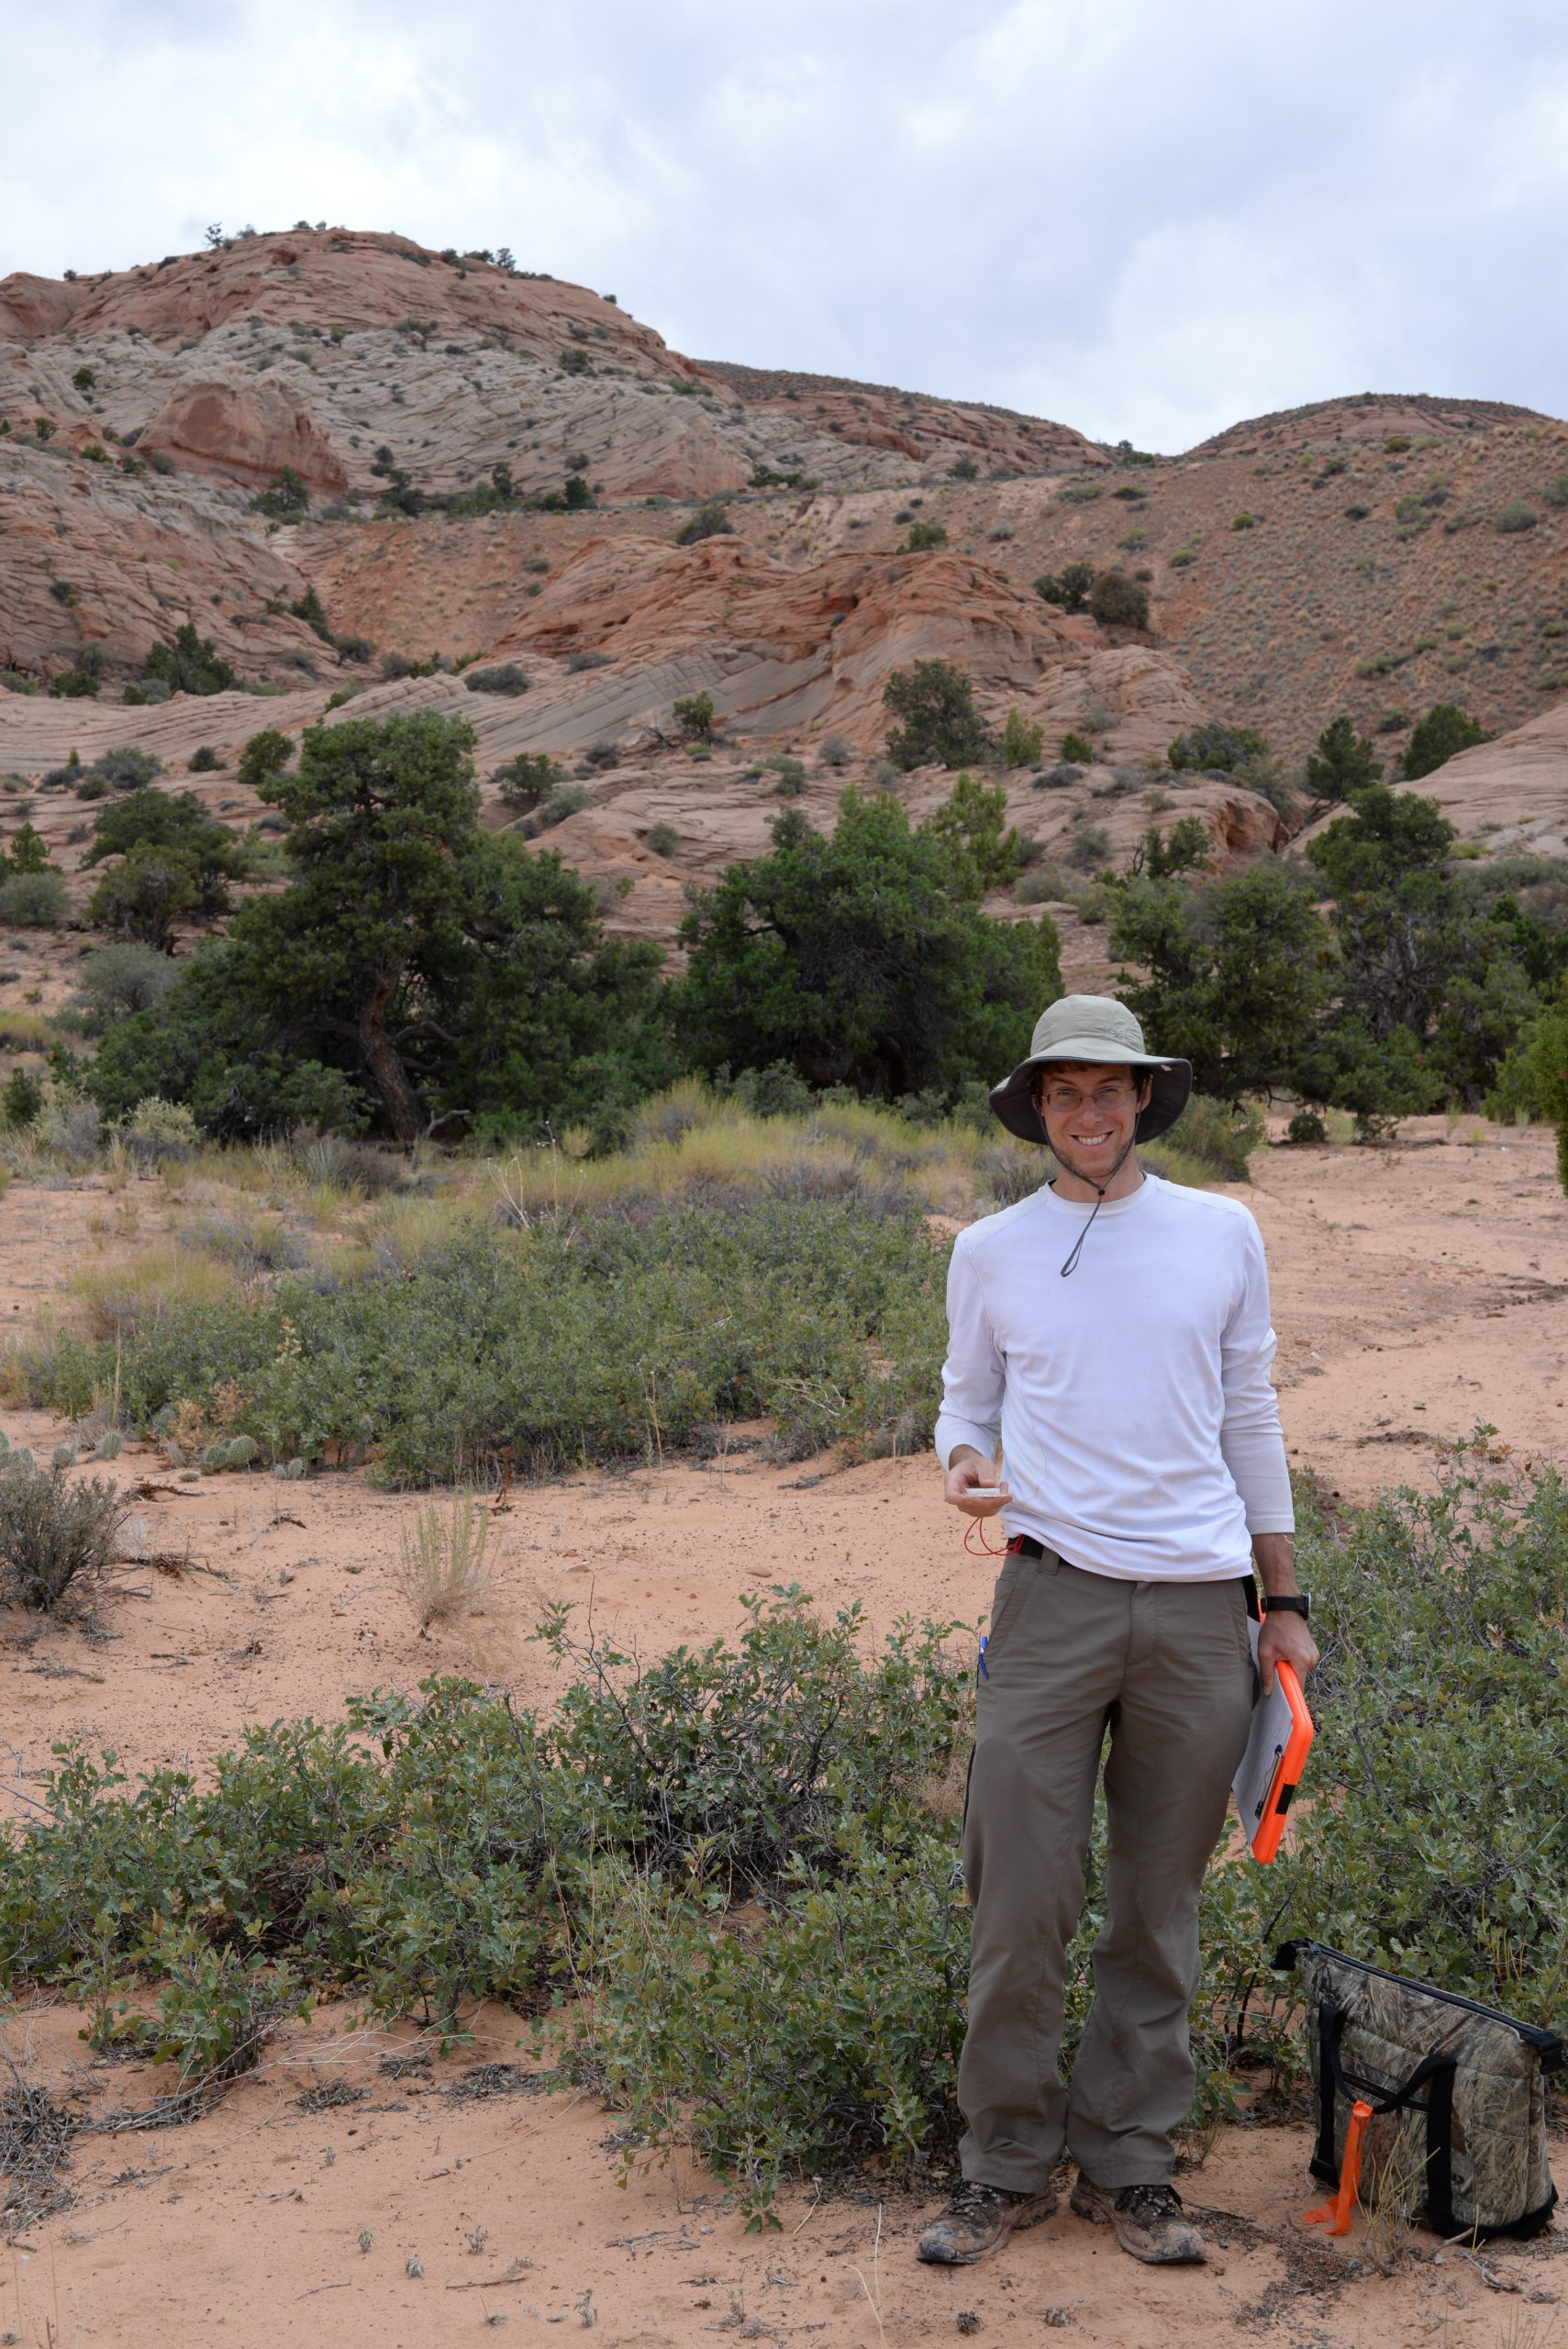 Sean Hoban in the field with shinnery oak (Quercus havardii)